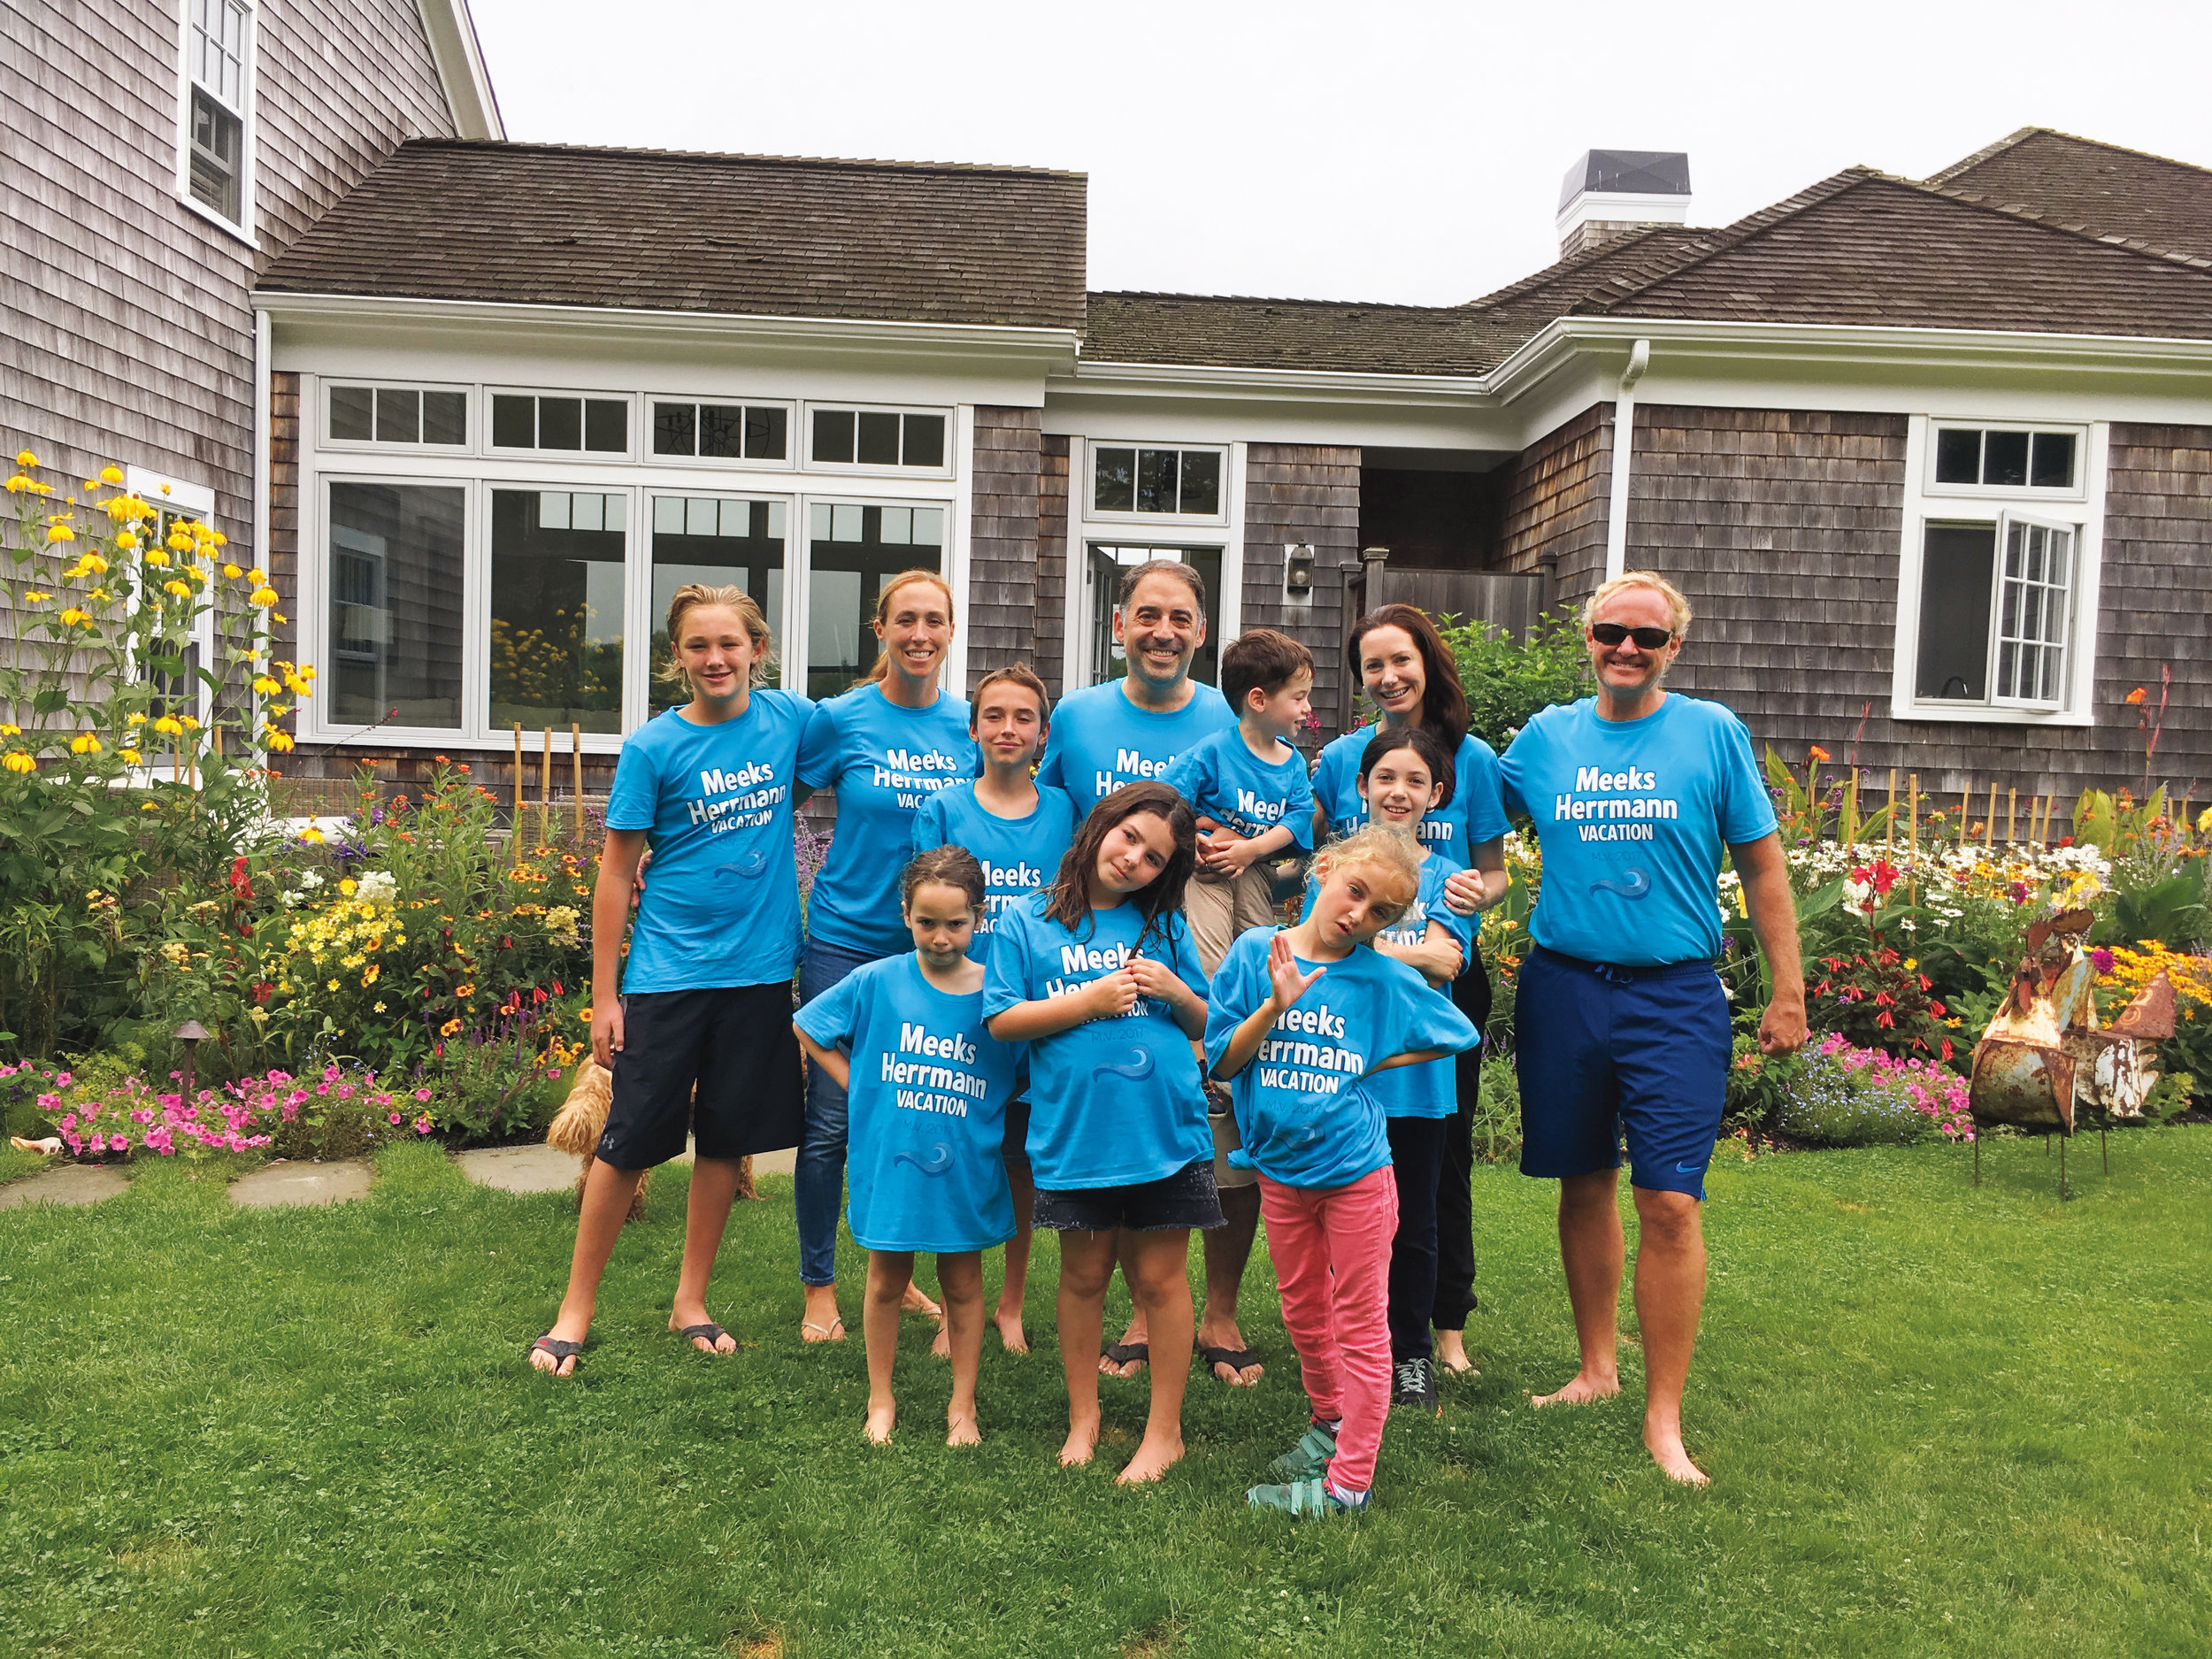 John Meeks '91, Adam Herrmann '91, and their families during a joint vacation on Martha's Vineyard.